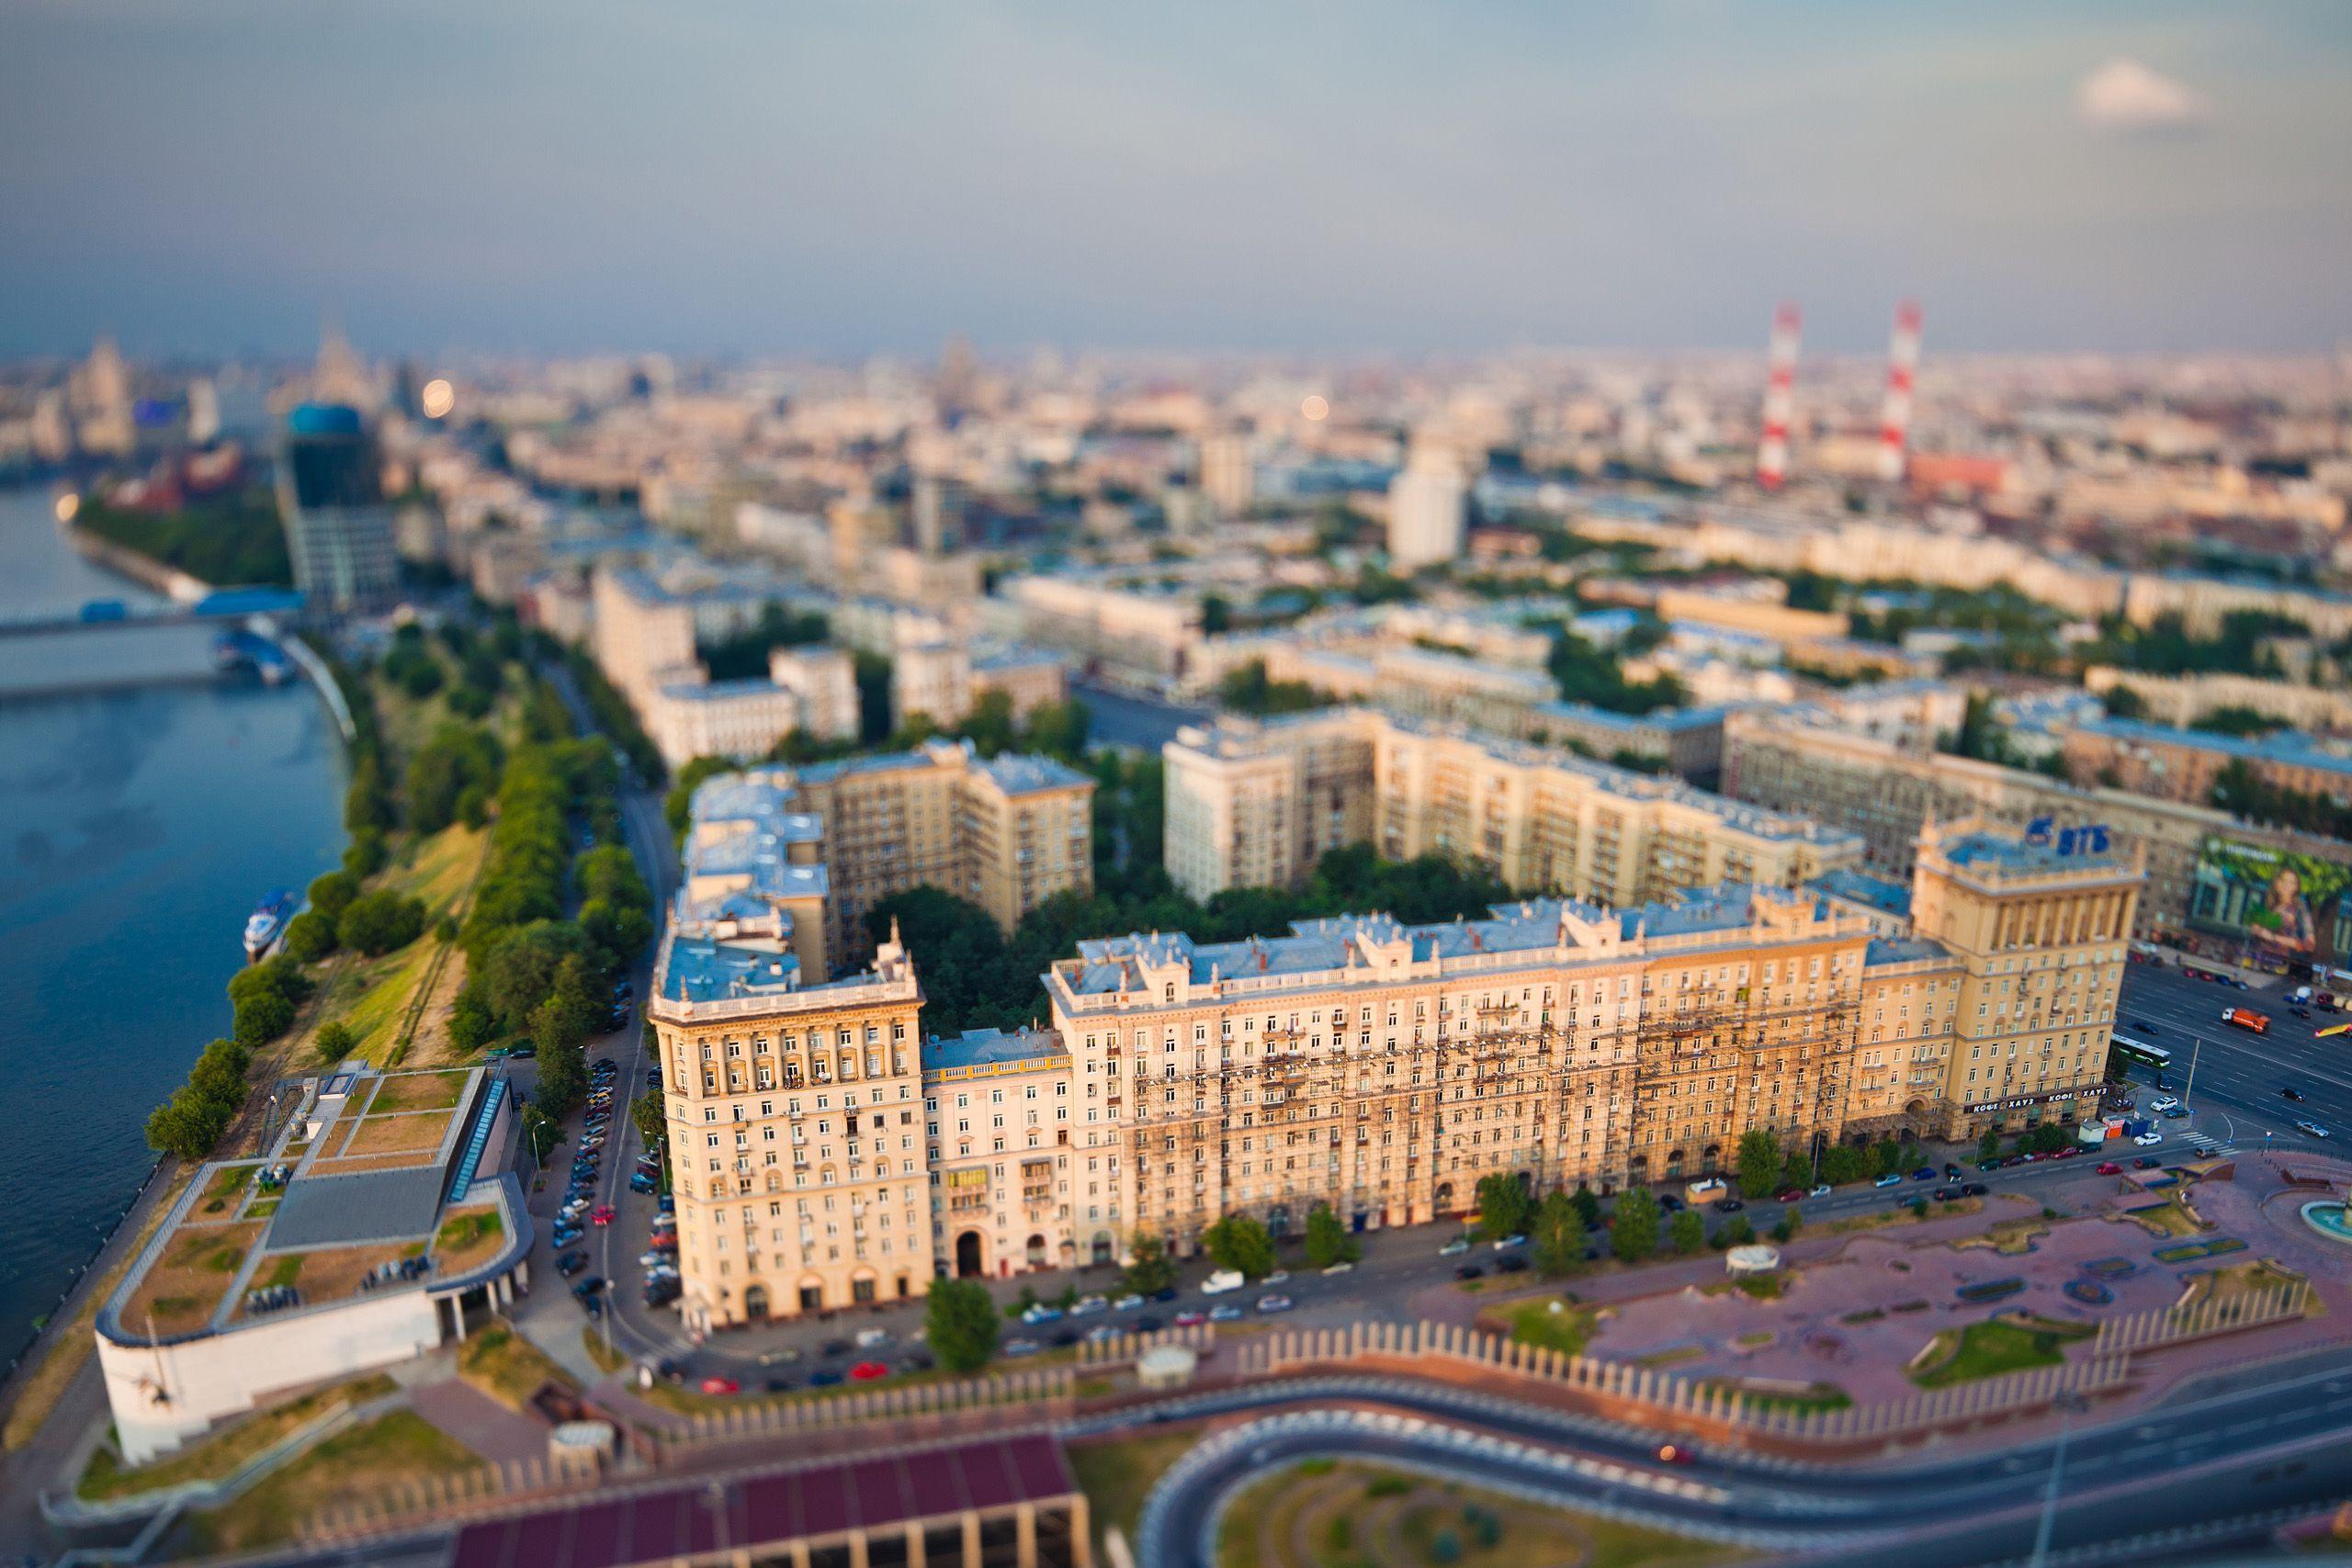 Tilt Shift Building Image